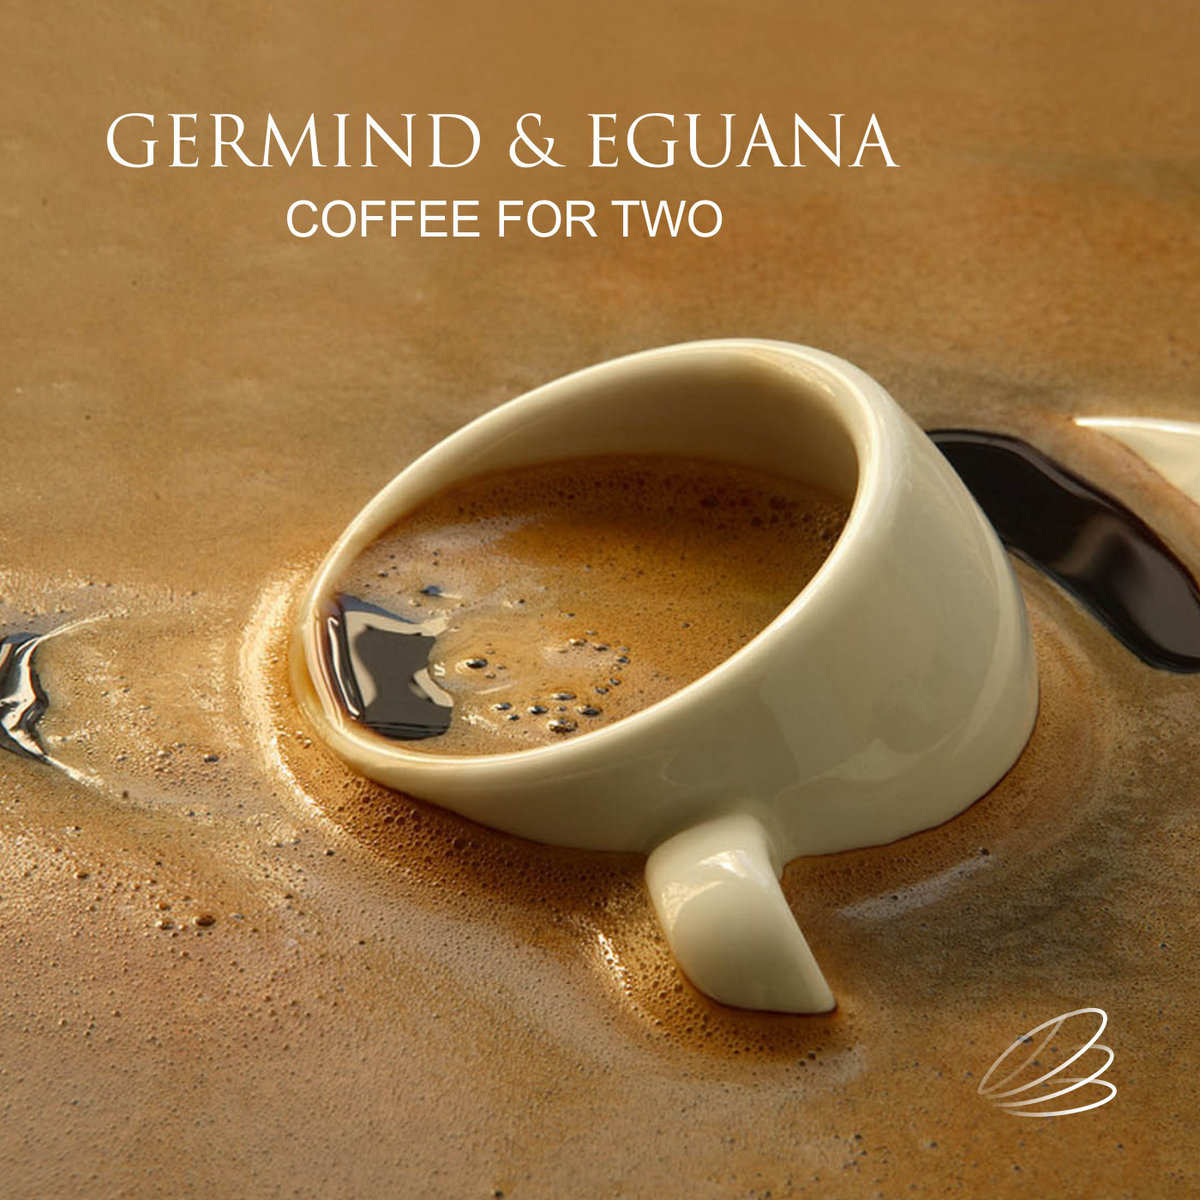 Germind & Eguana - Coffee For Two